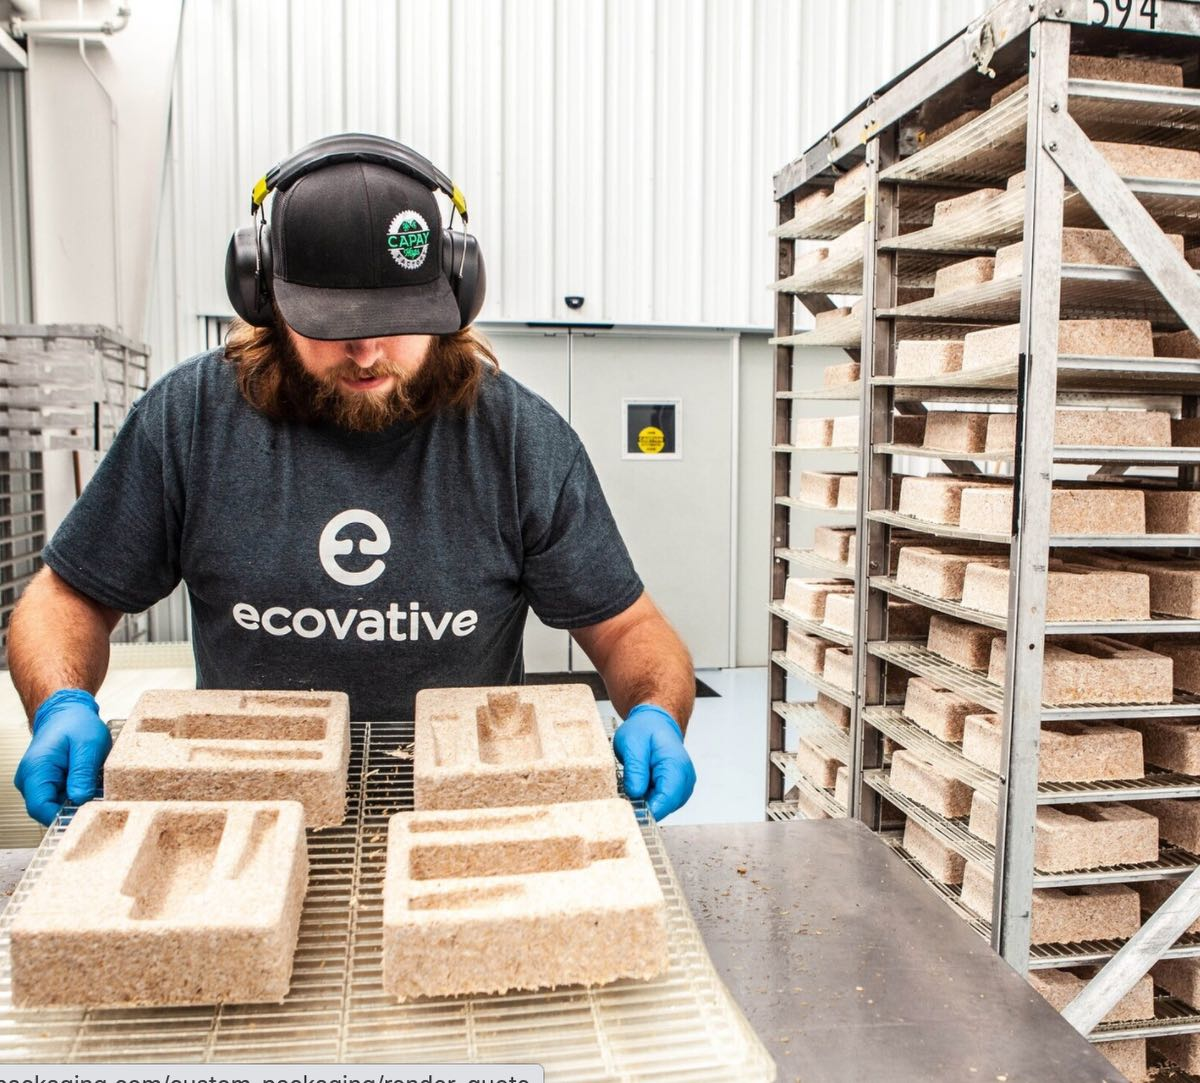 (Mycelium package design by Ecovative)